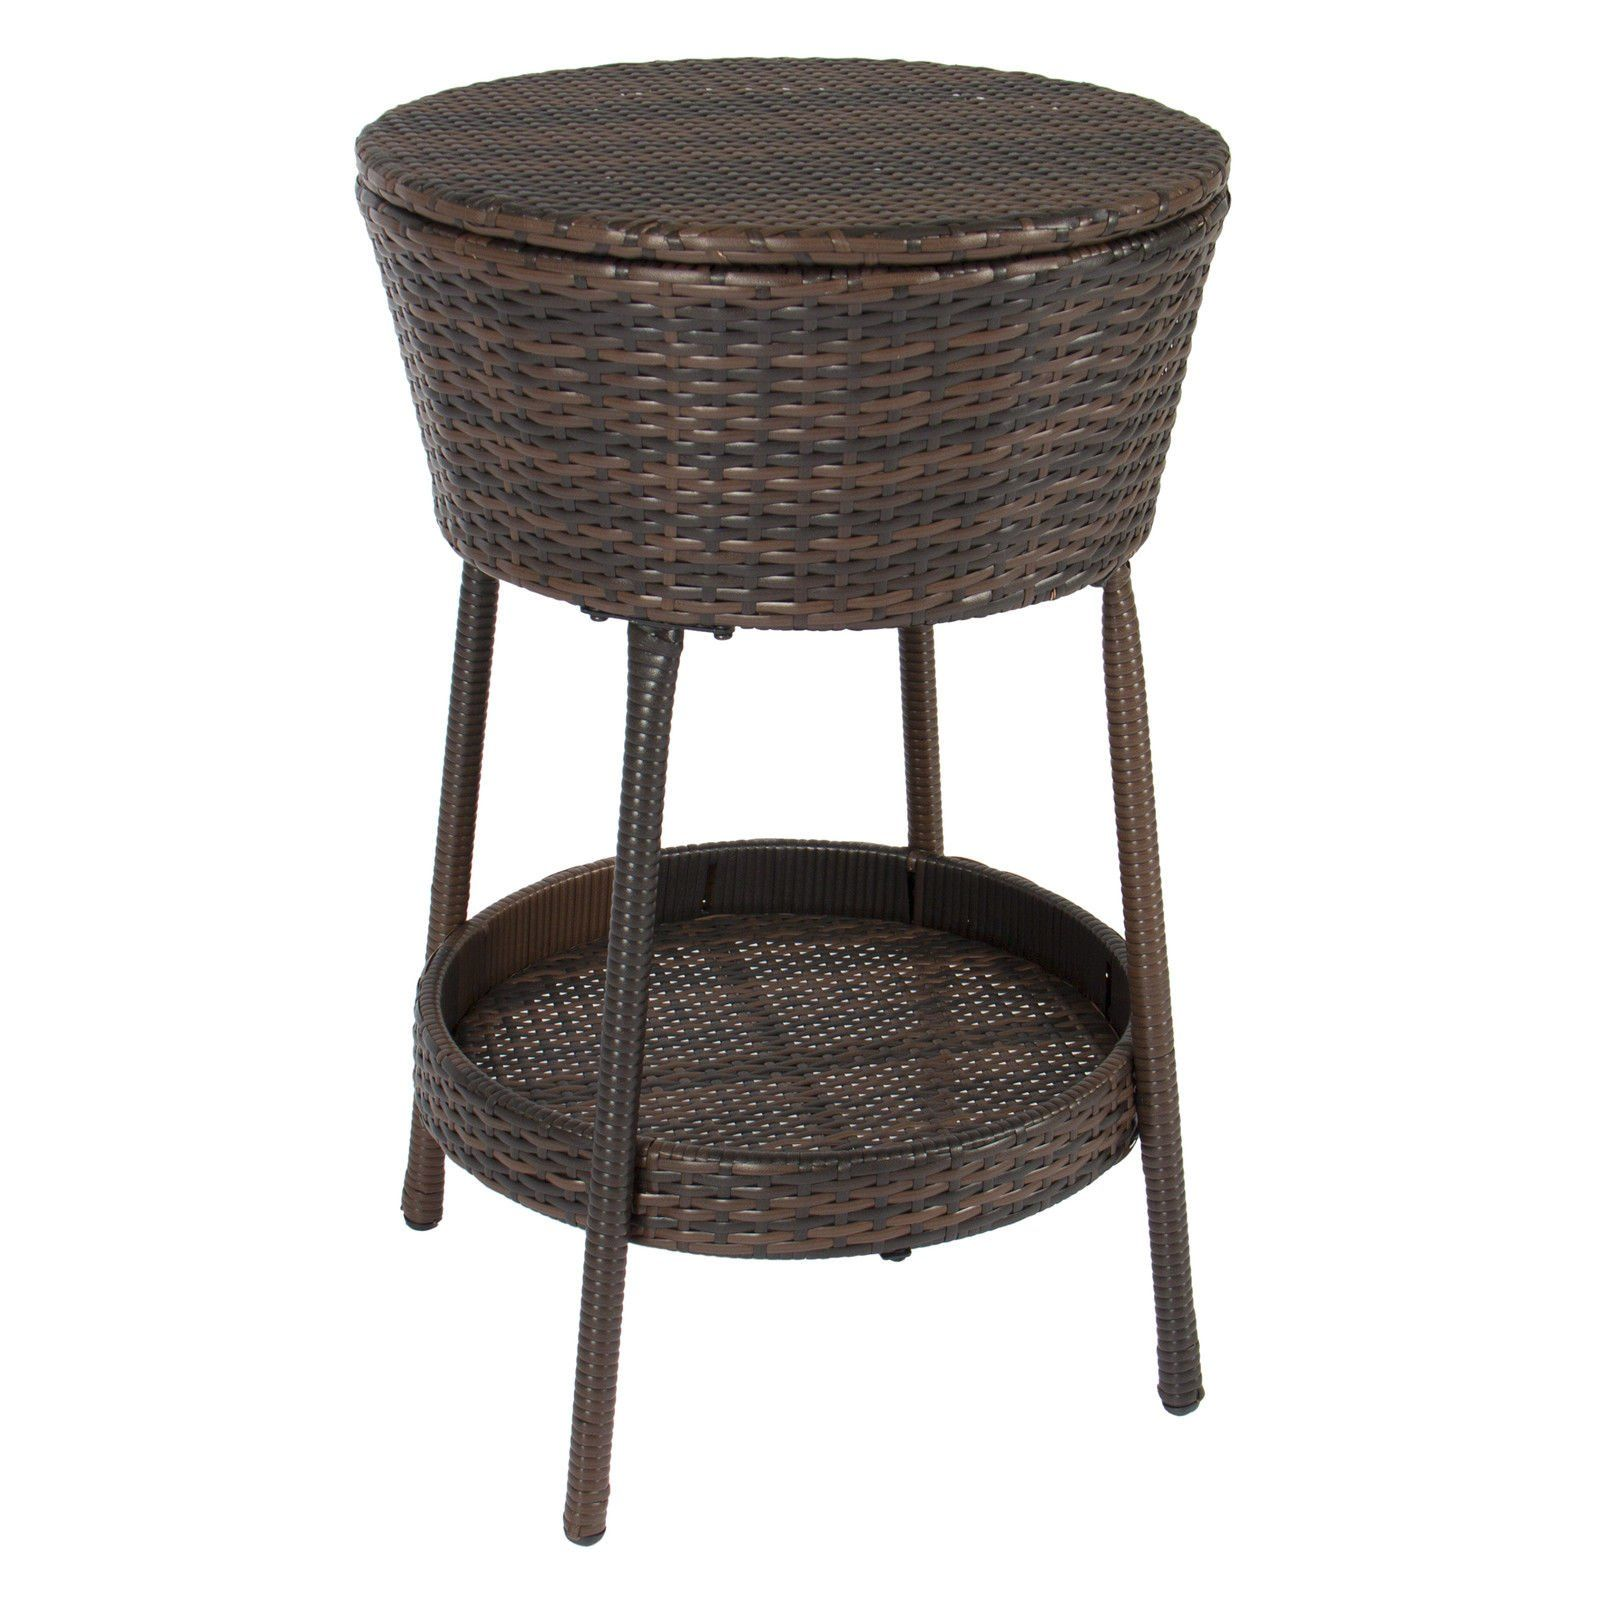 Wicker ice bucket outdoor patio allweather beverage cooler with tray